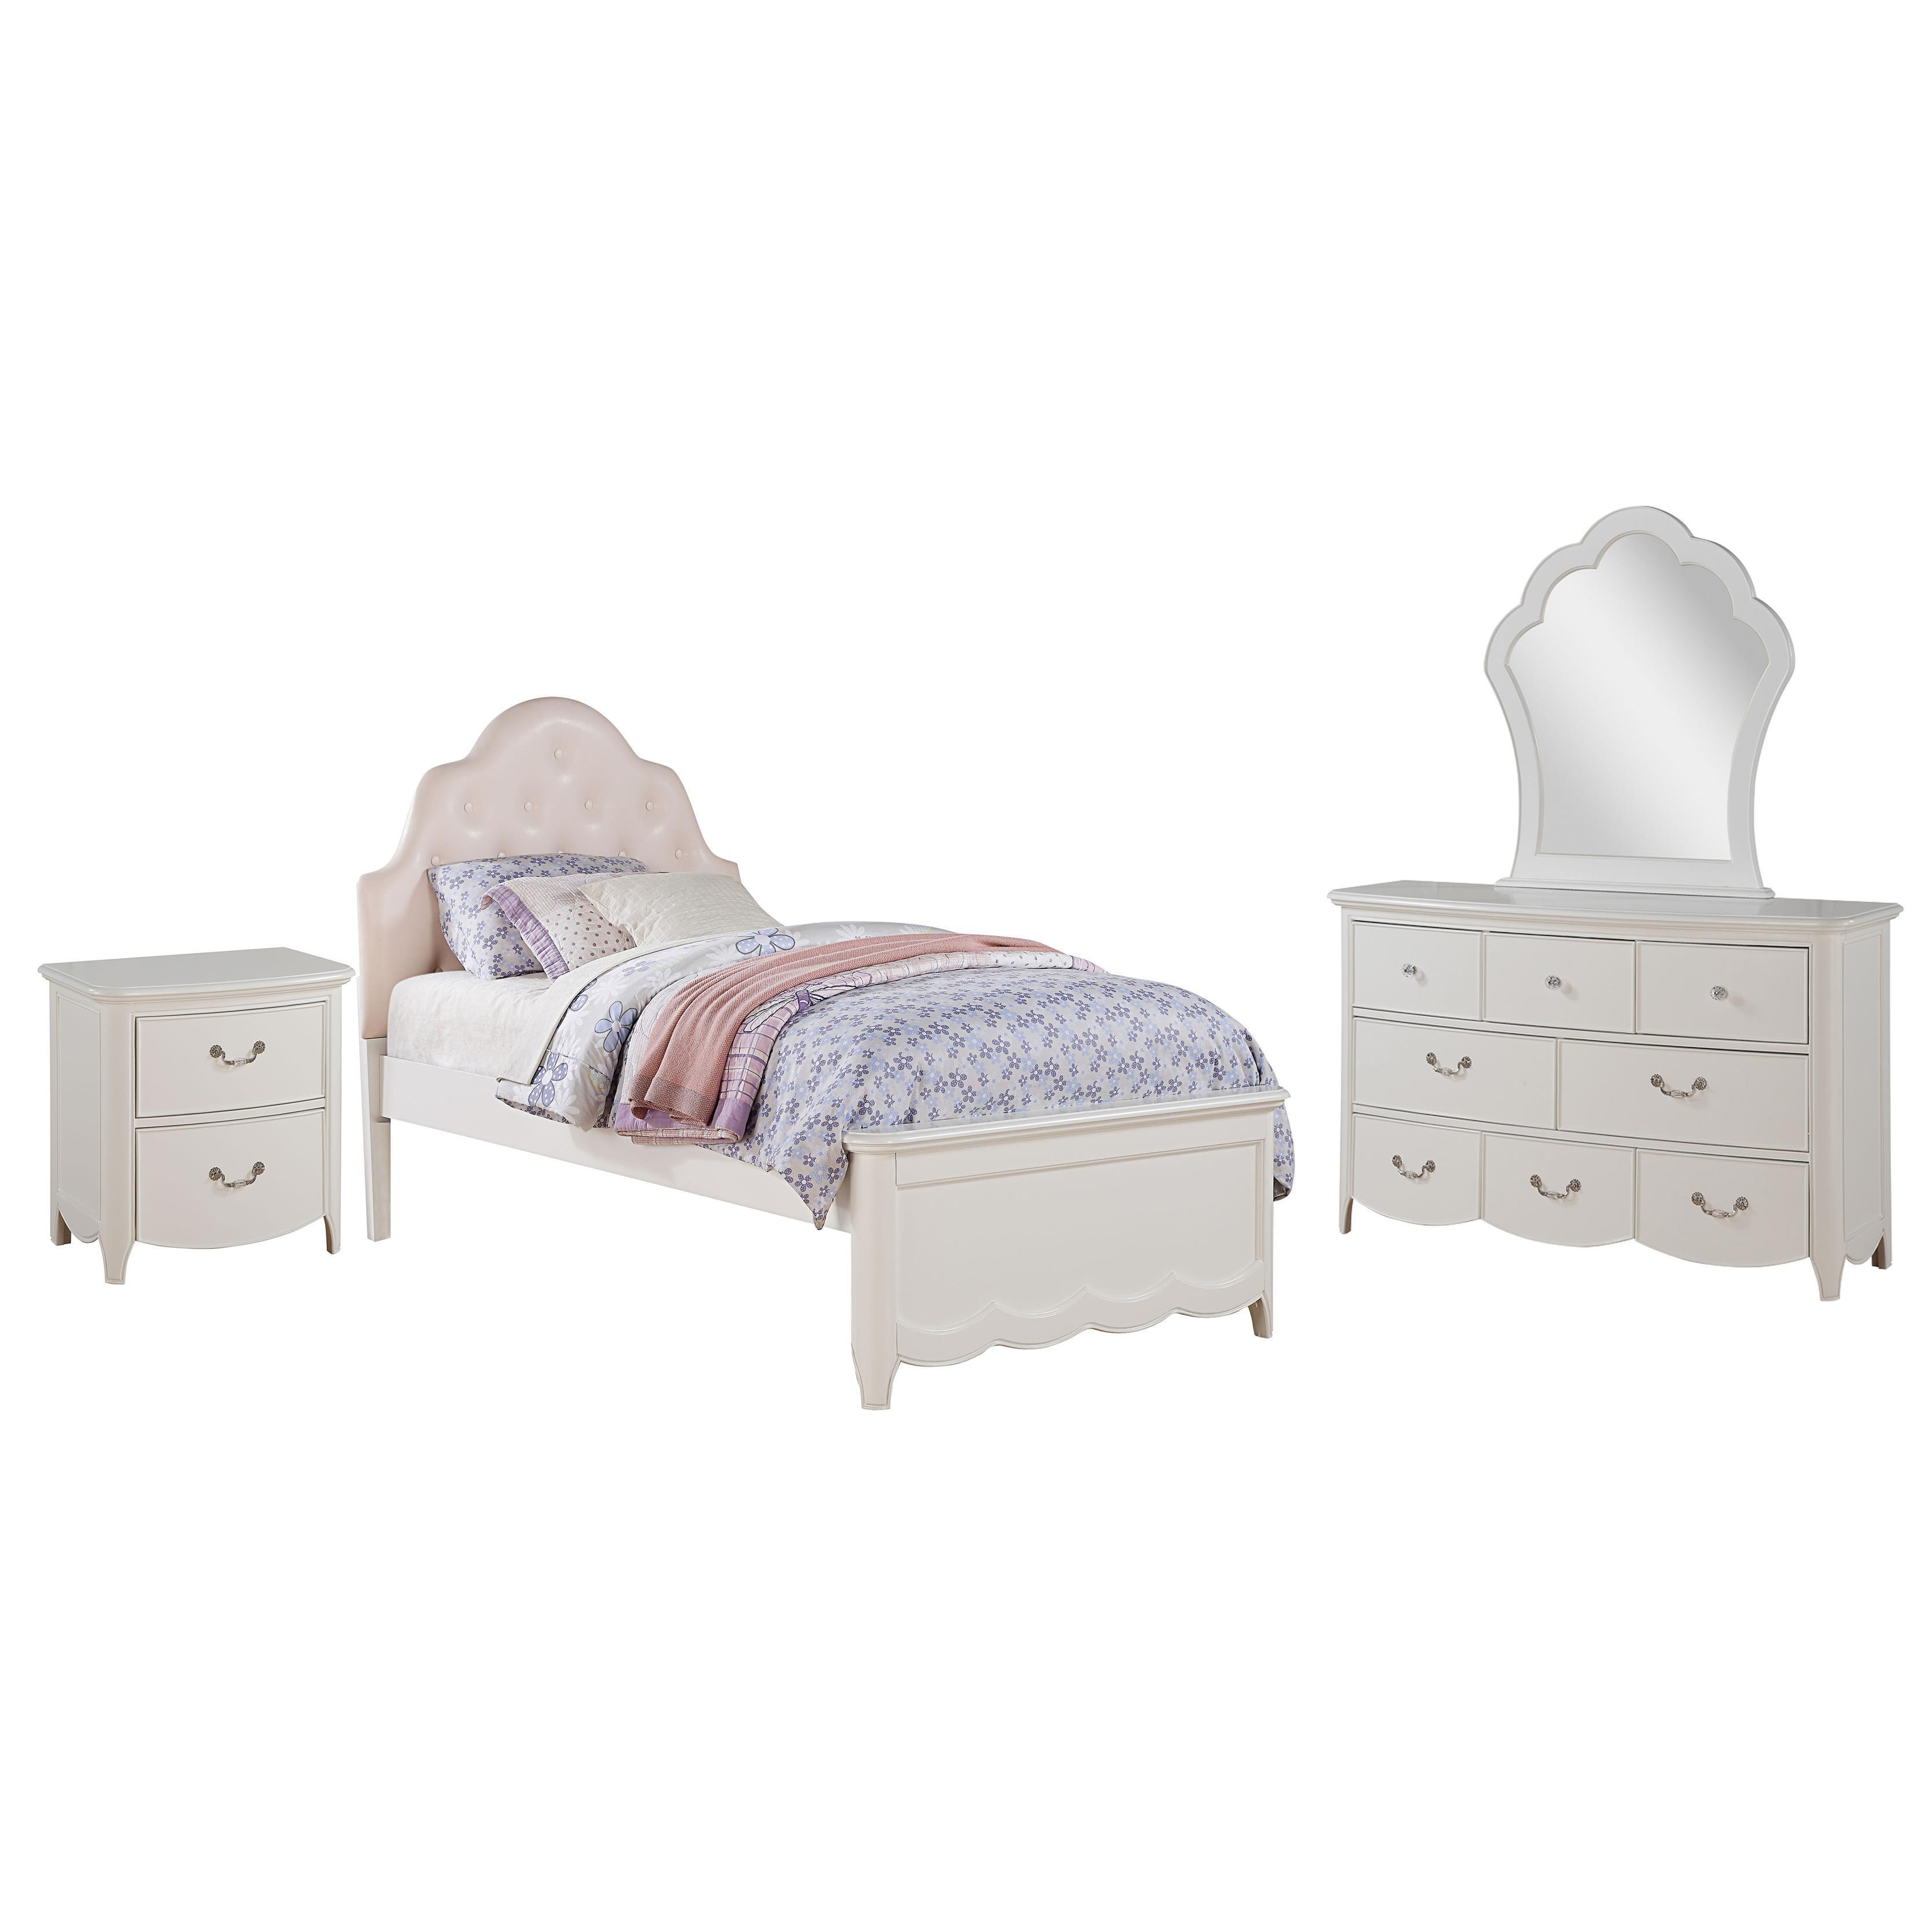 Acme Furniture Cecilie White Wood Pink Faux Leather Tufte...